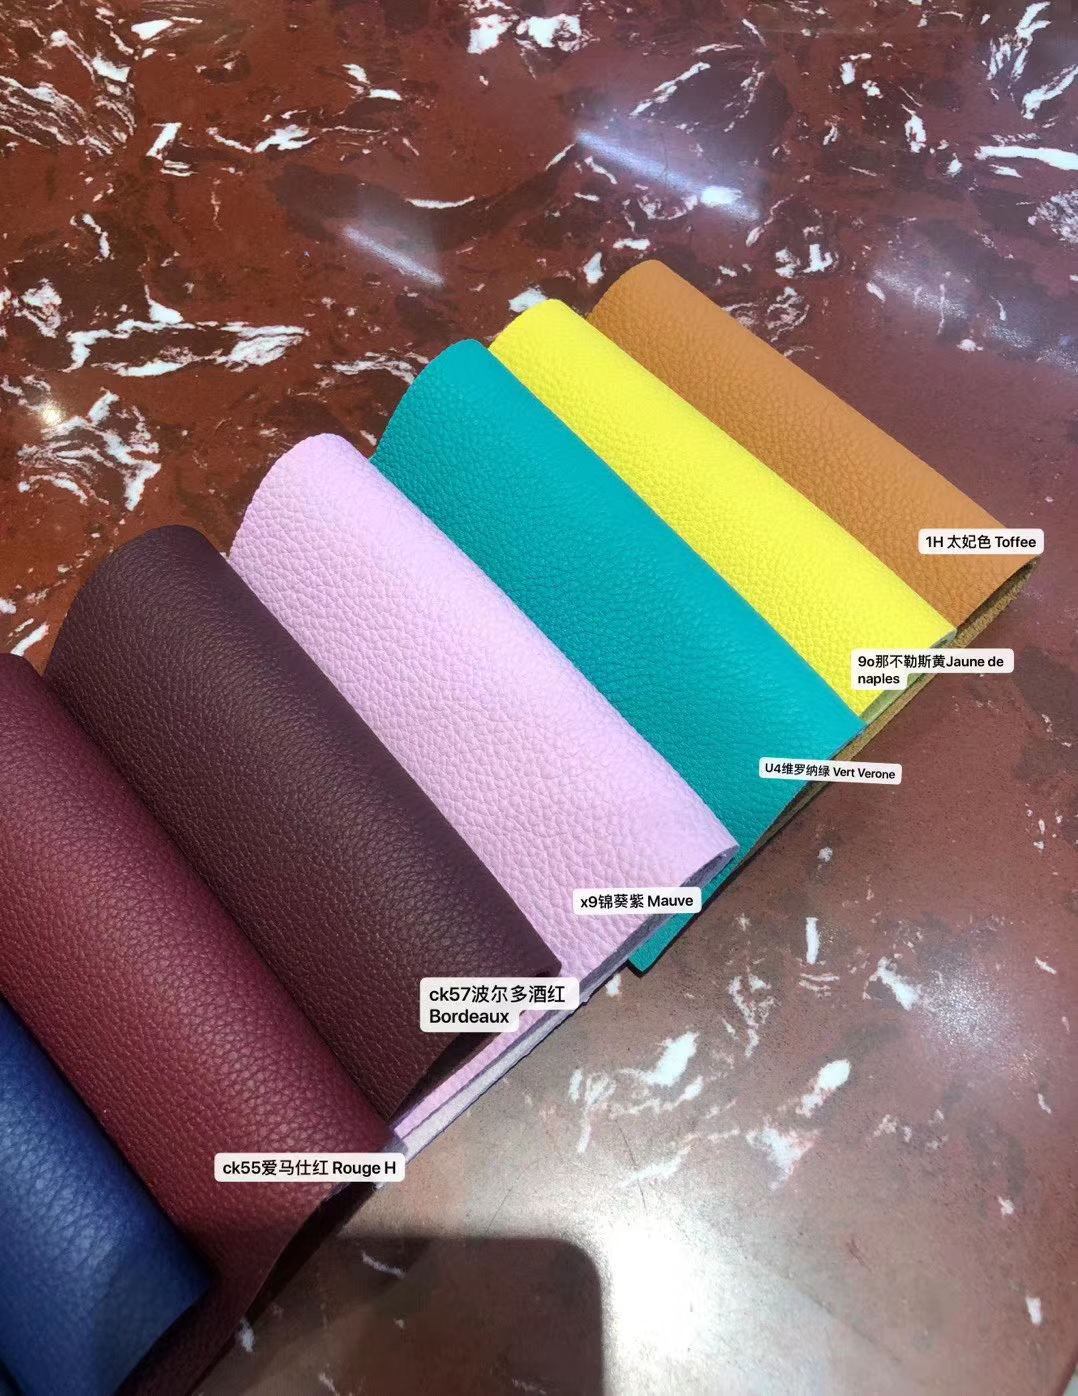 New Arrival Hermes New Multi-color Togo Calf Leather Hermes Bags Customize